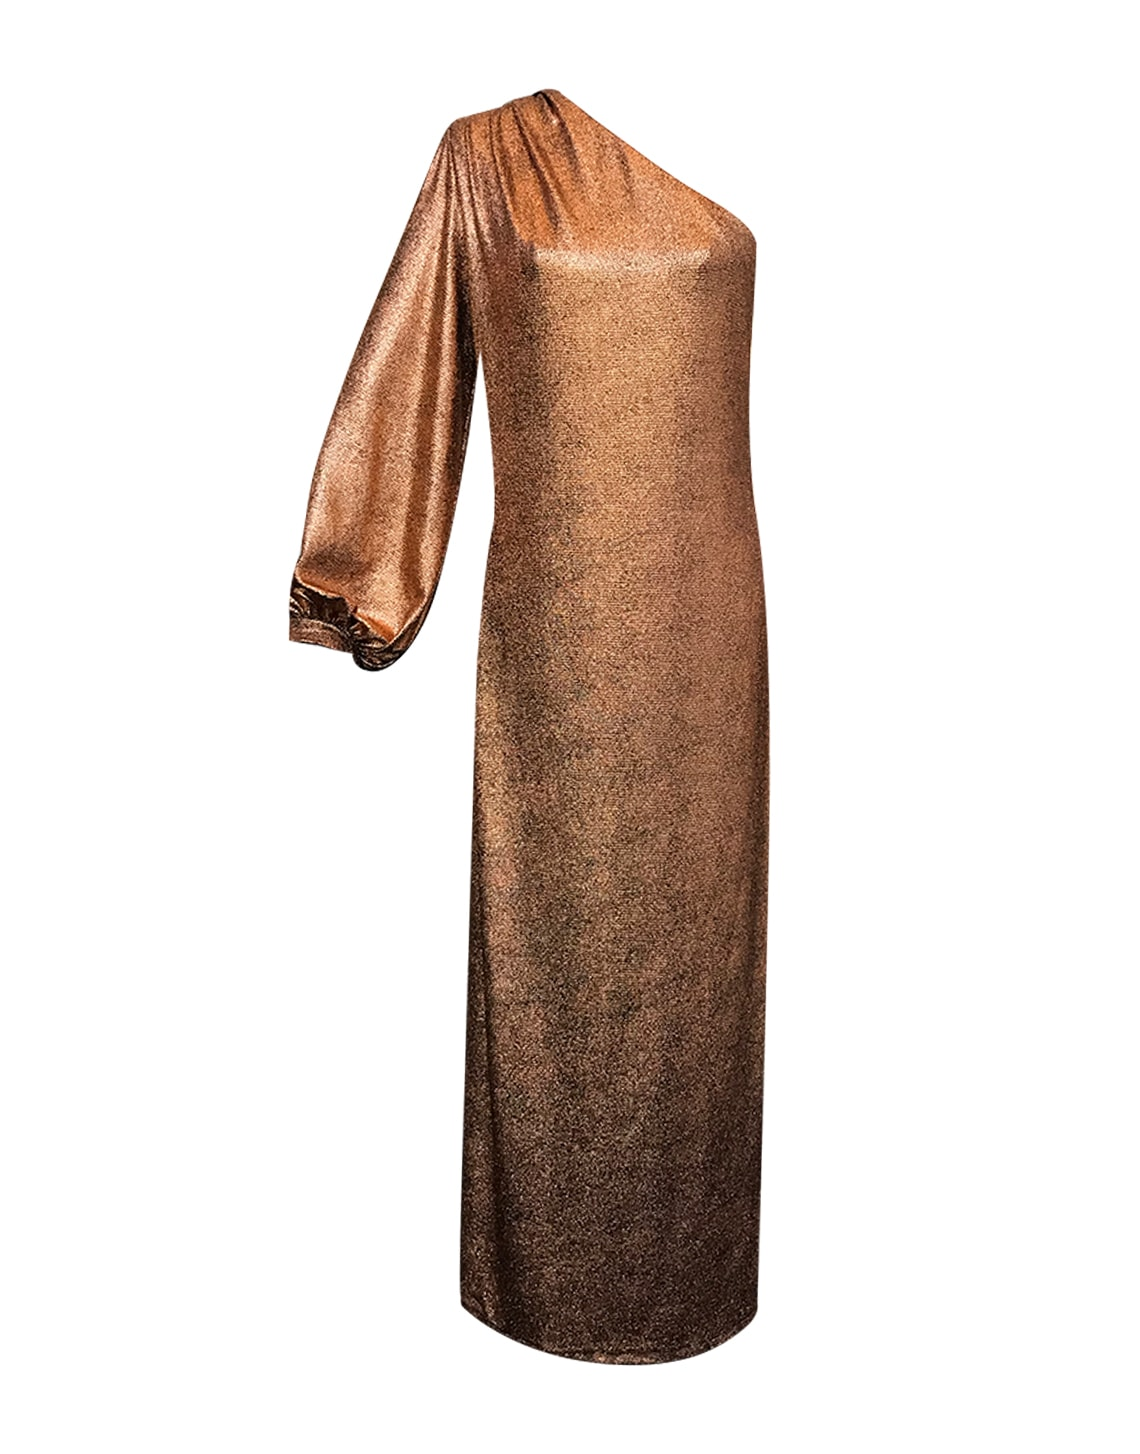 Ivy Dress - Bronze by Jessica K on curated-crowd.com